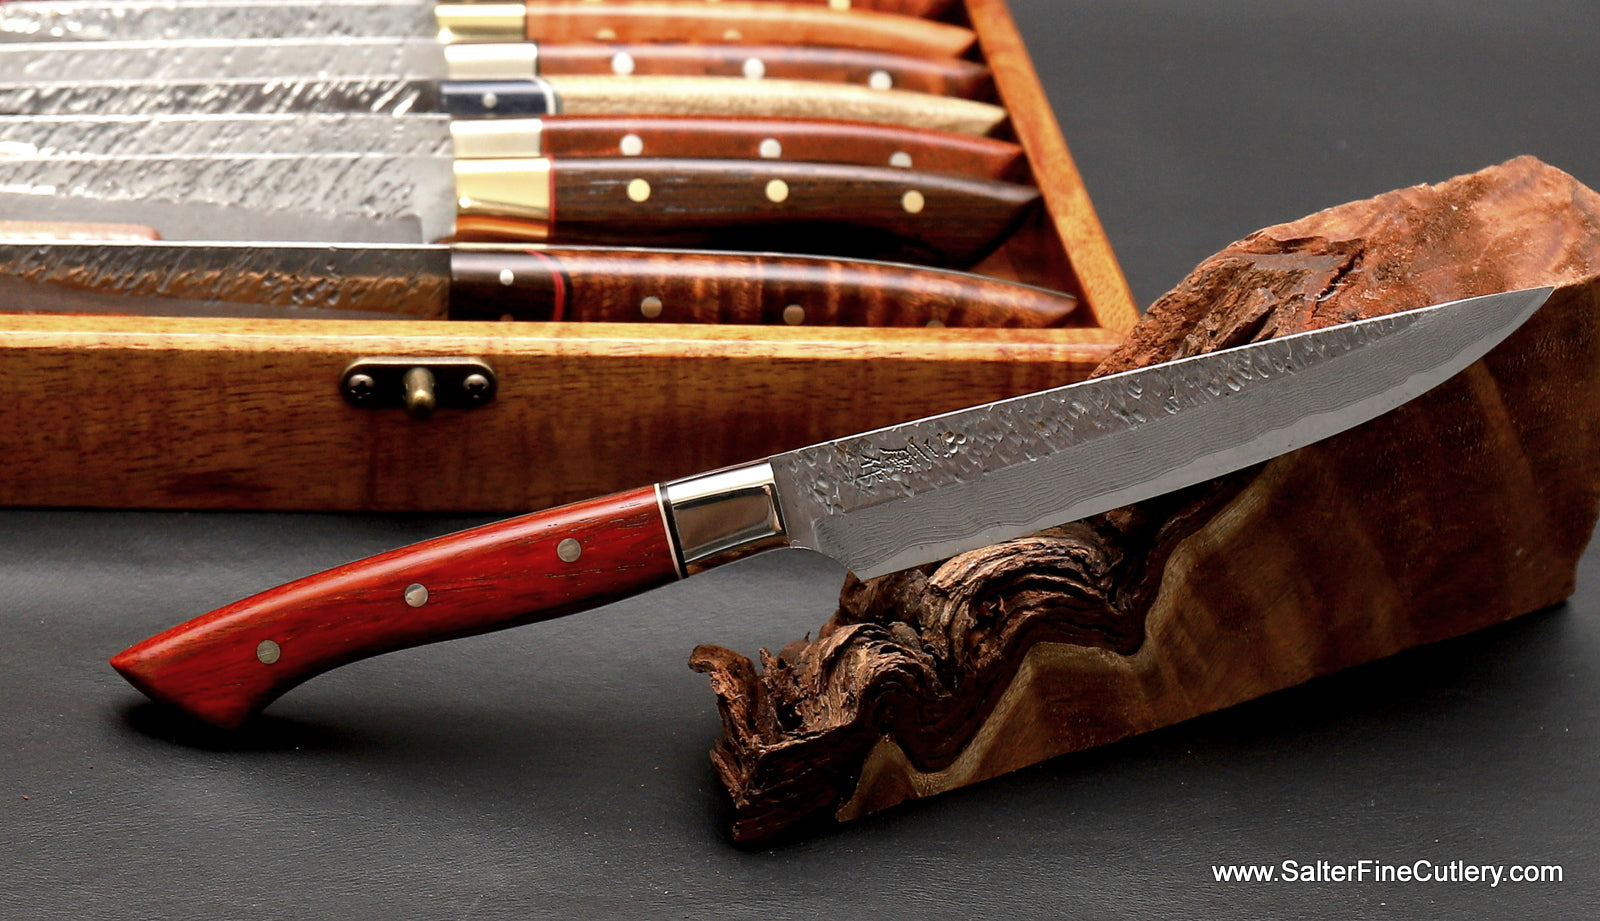 Raptor design luxury handmade tableware including choice of exotic wood handles like this cocobolo wood with nickel-silver contoured bolster and black and white accents from Salter Fine Cutlery